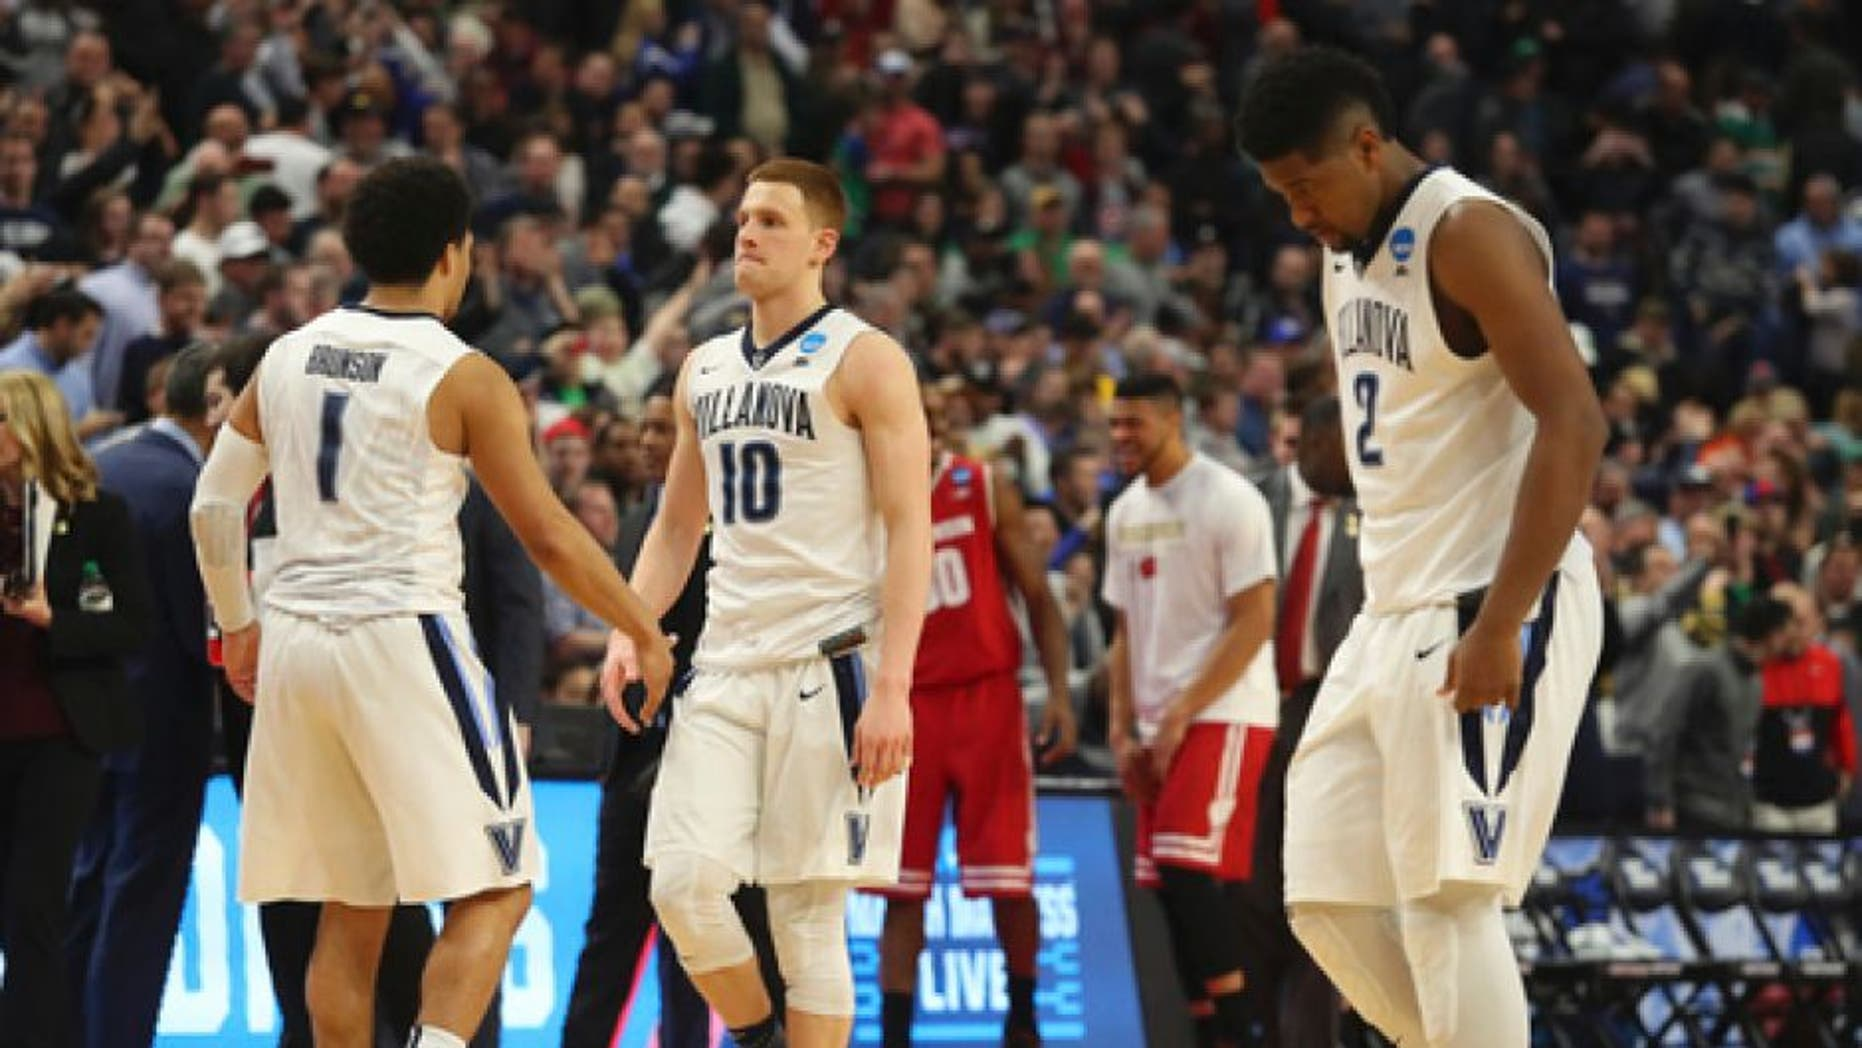 Villanova guard Jalen Brunson (1), guard Donte DiVincenzo (10) and forward Kris Jenkins (2) leave the court after their loss to Wisconsin in a second-round men's college basketball game in the NCAA Tournament, Saturday, March 18, 2017, in Buffalo, N.Y. (AP Photo/Bill Wippert)